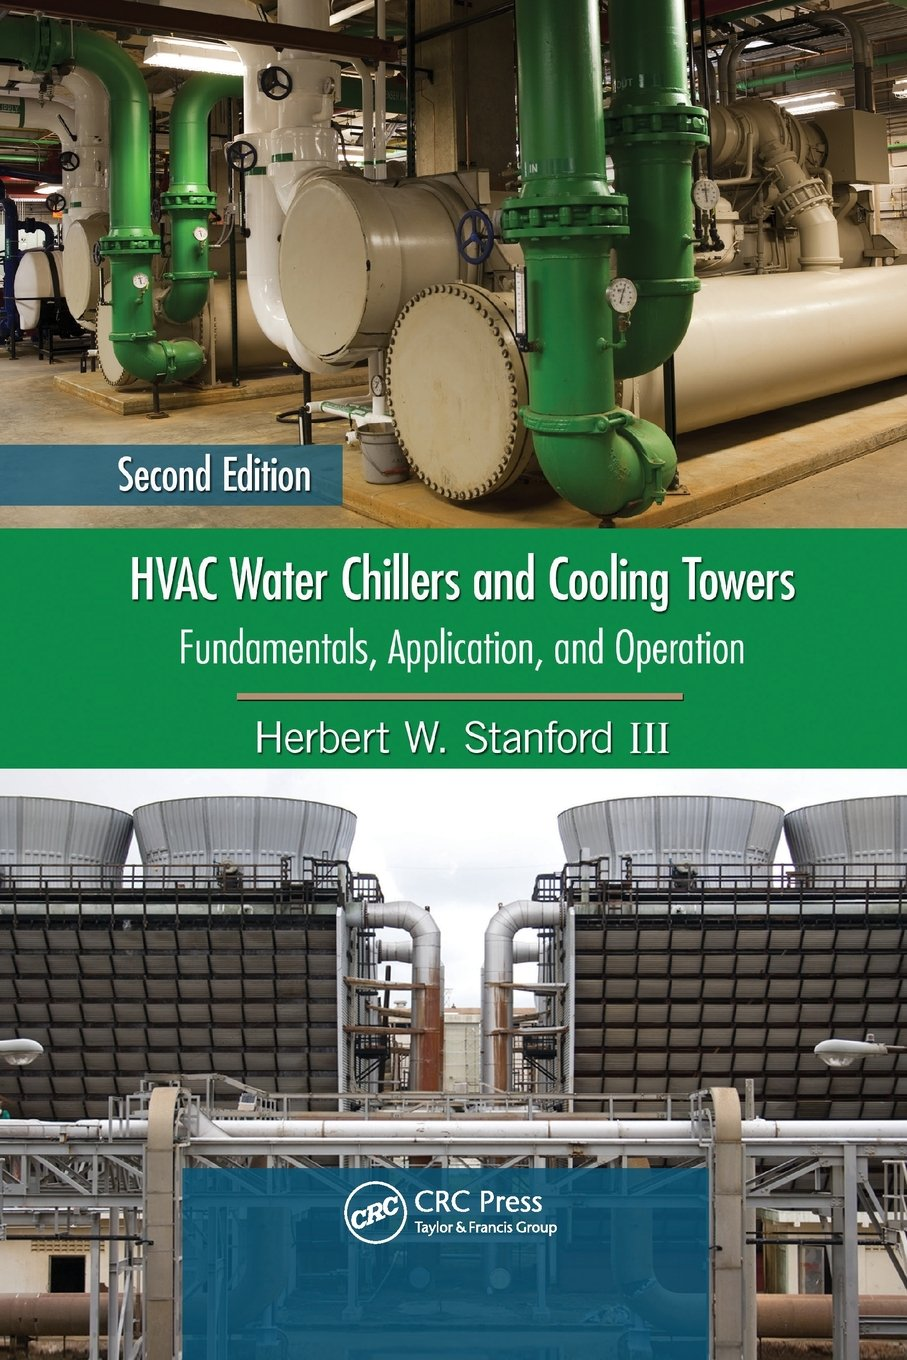 HVAC Water Chillers and Cooling Towers: Fundamentals, Application, and Operation, Second Edition (Mechanical Engineering)